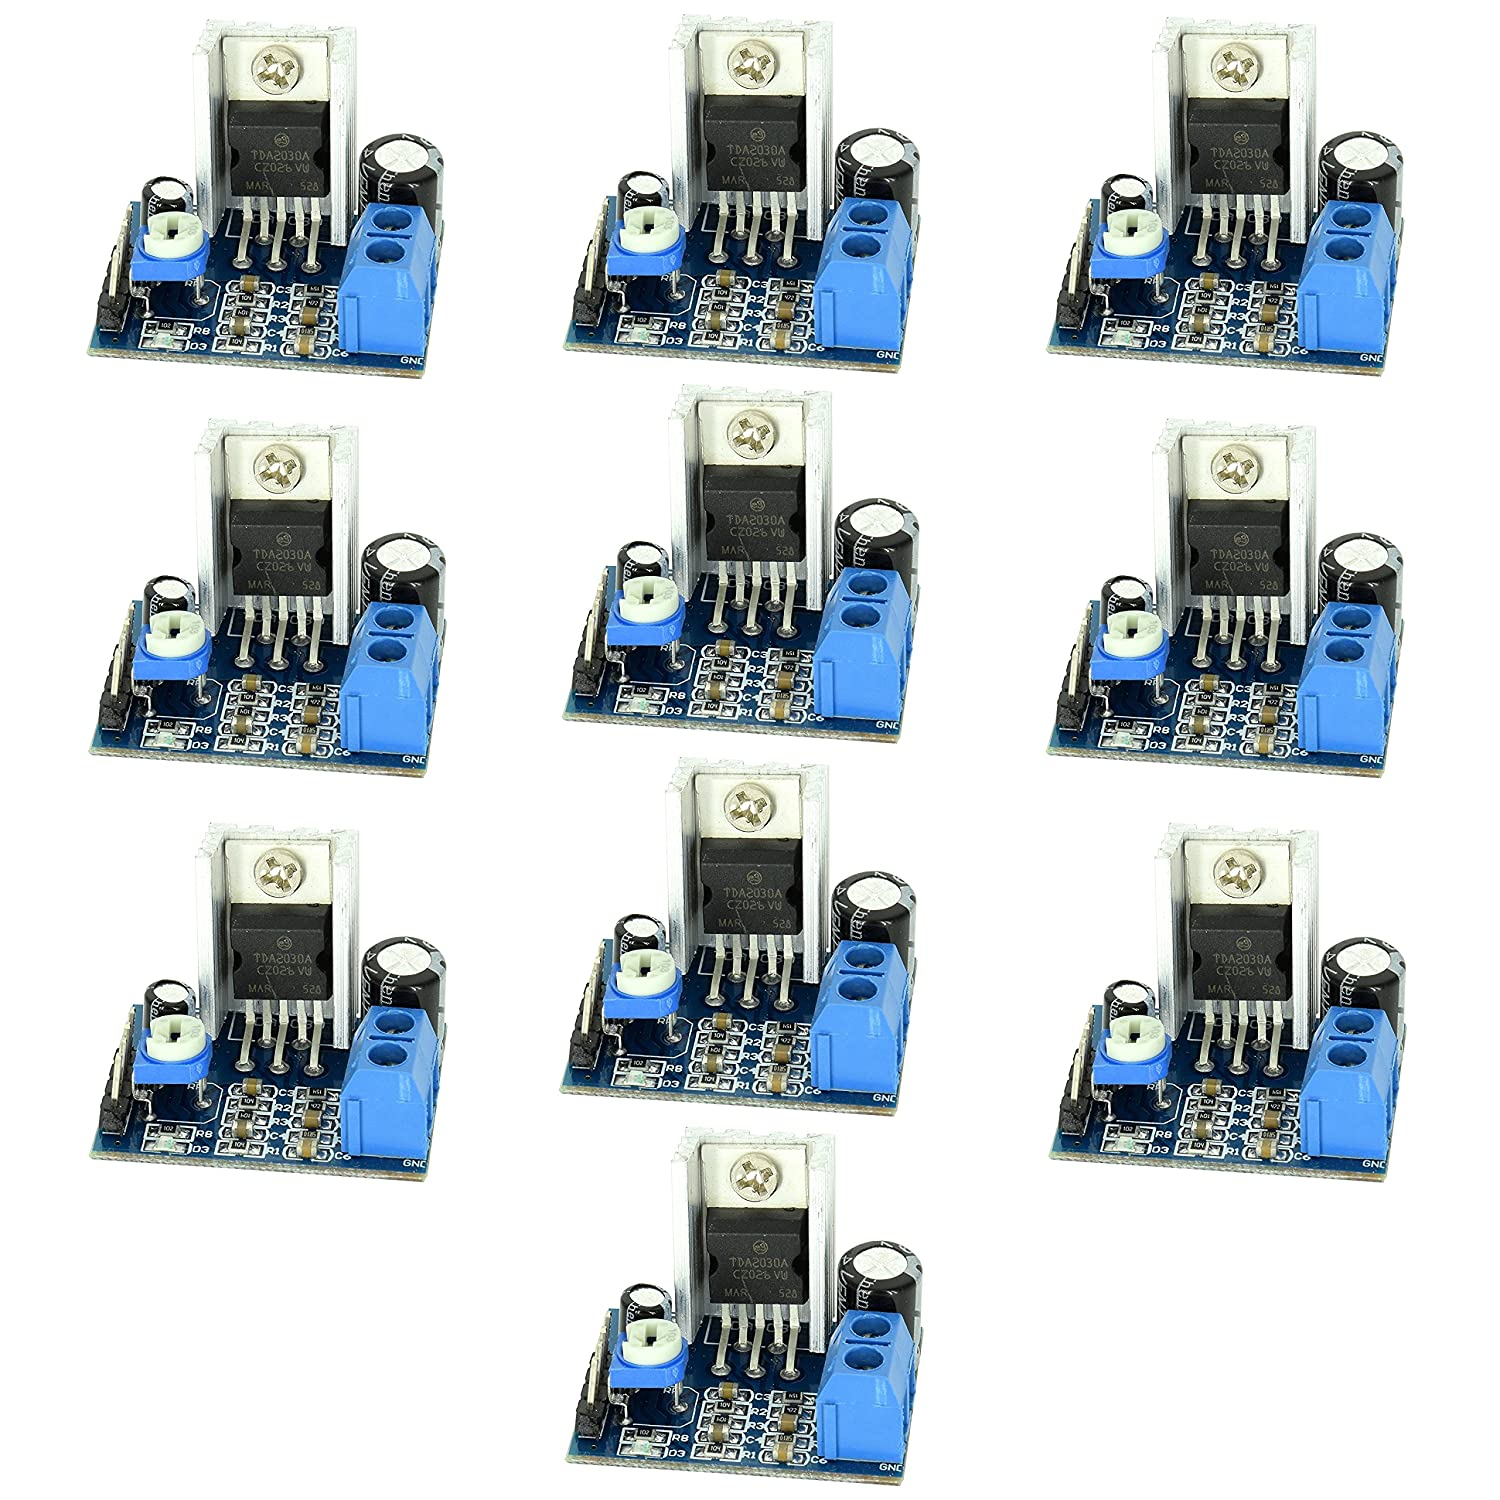 amazon com: optimus electric 10pcs tda2030 chip audio amplifier module  board with 18w output, 10k potentiometer volume adjustment and power  indicator from: